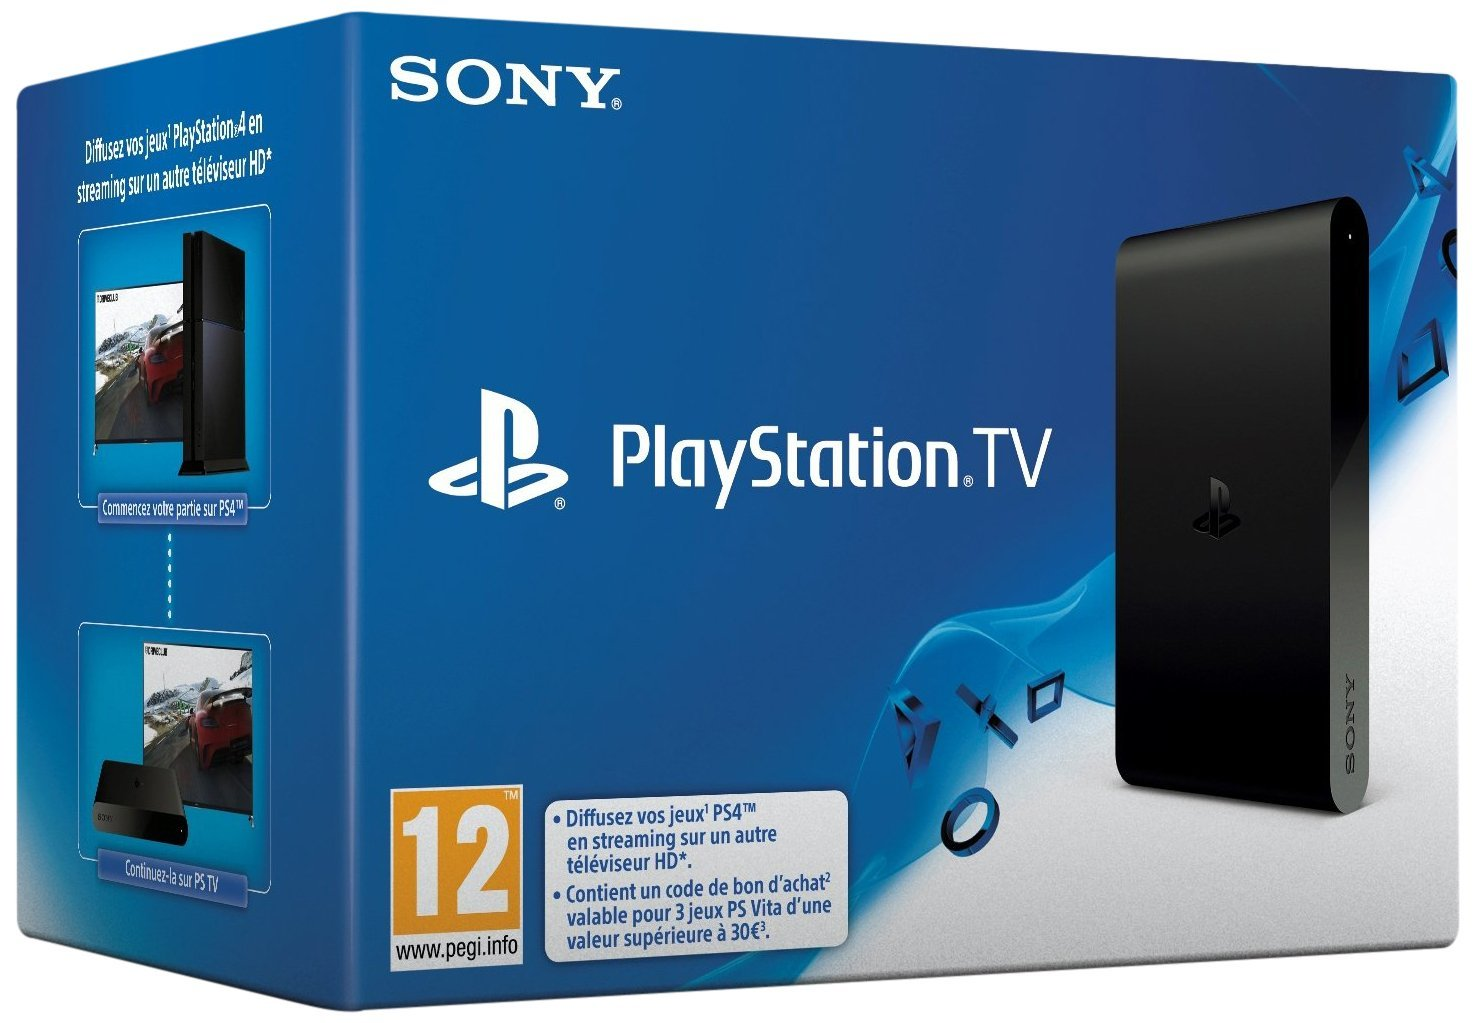 playstation tv notre test du nouveau bo tier ps4 page 1 gamalive. Black Bedroom Furniture Sets. Home Design Ideas